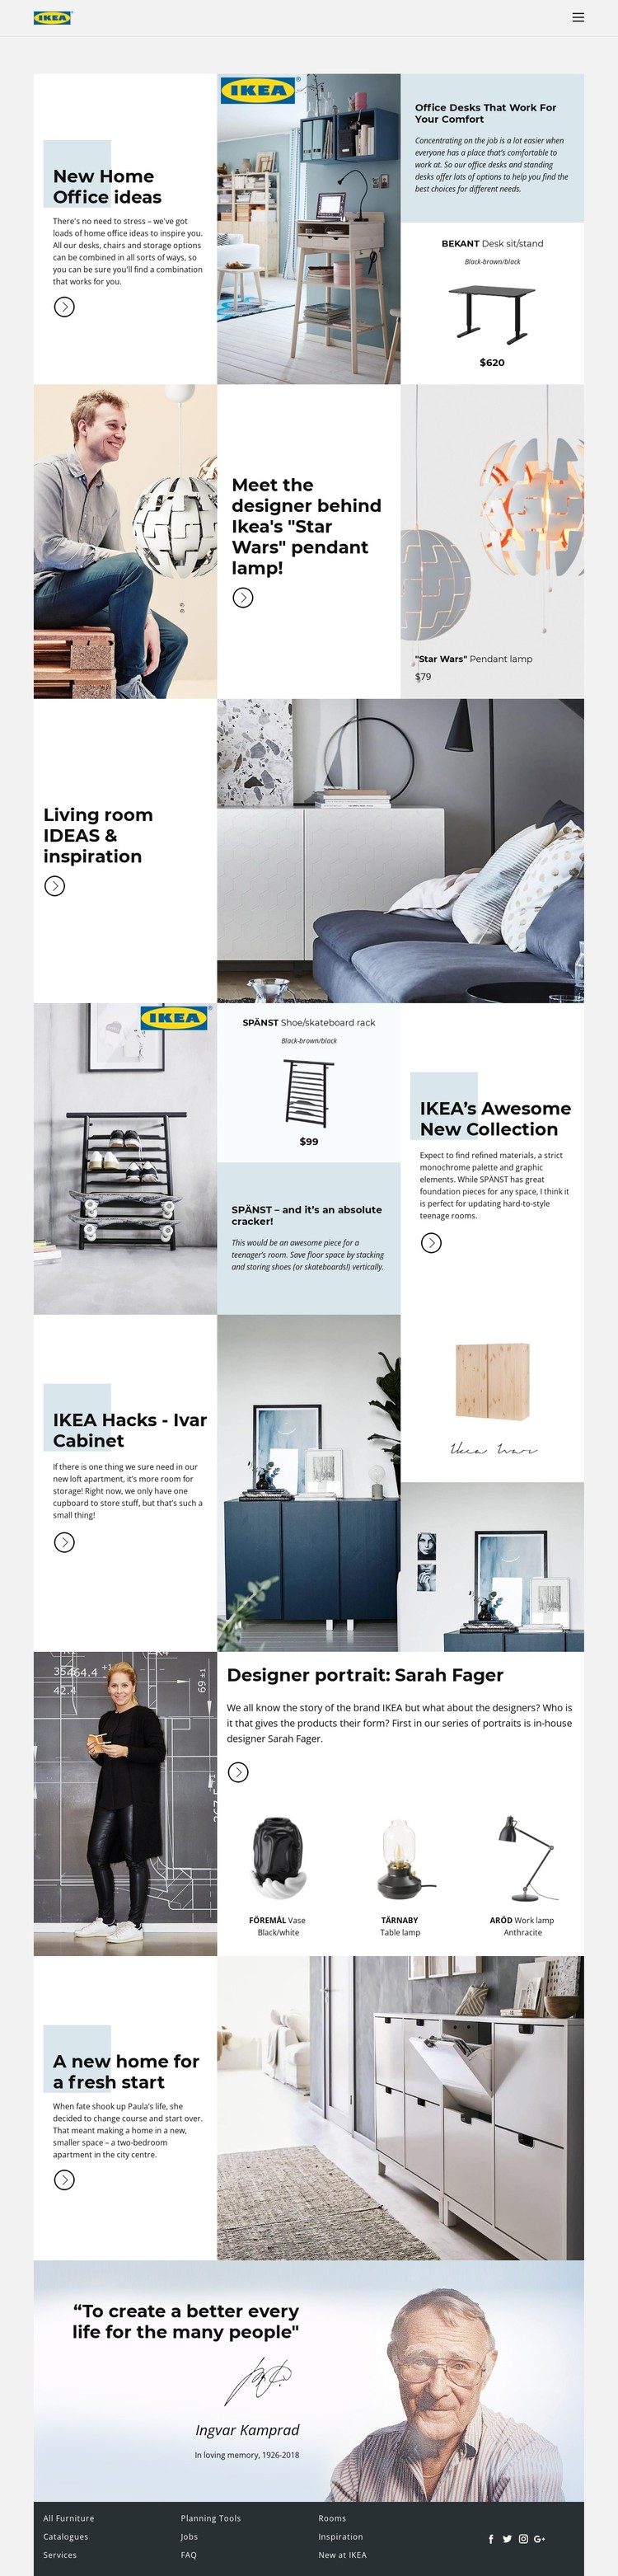 Inspiration from IKEA CSS Template